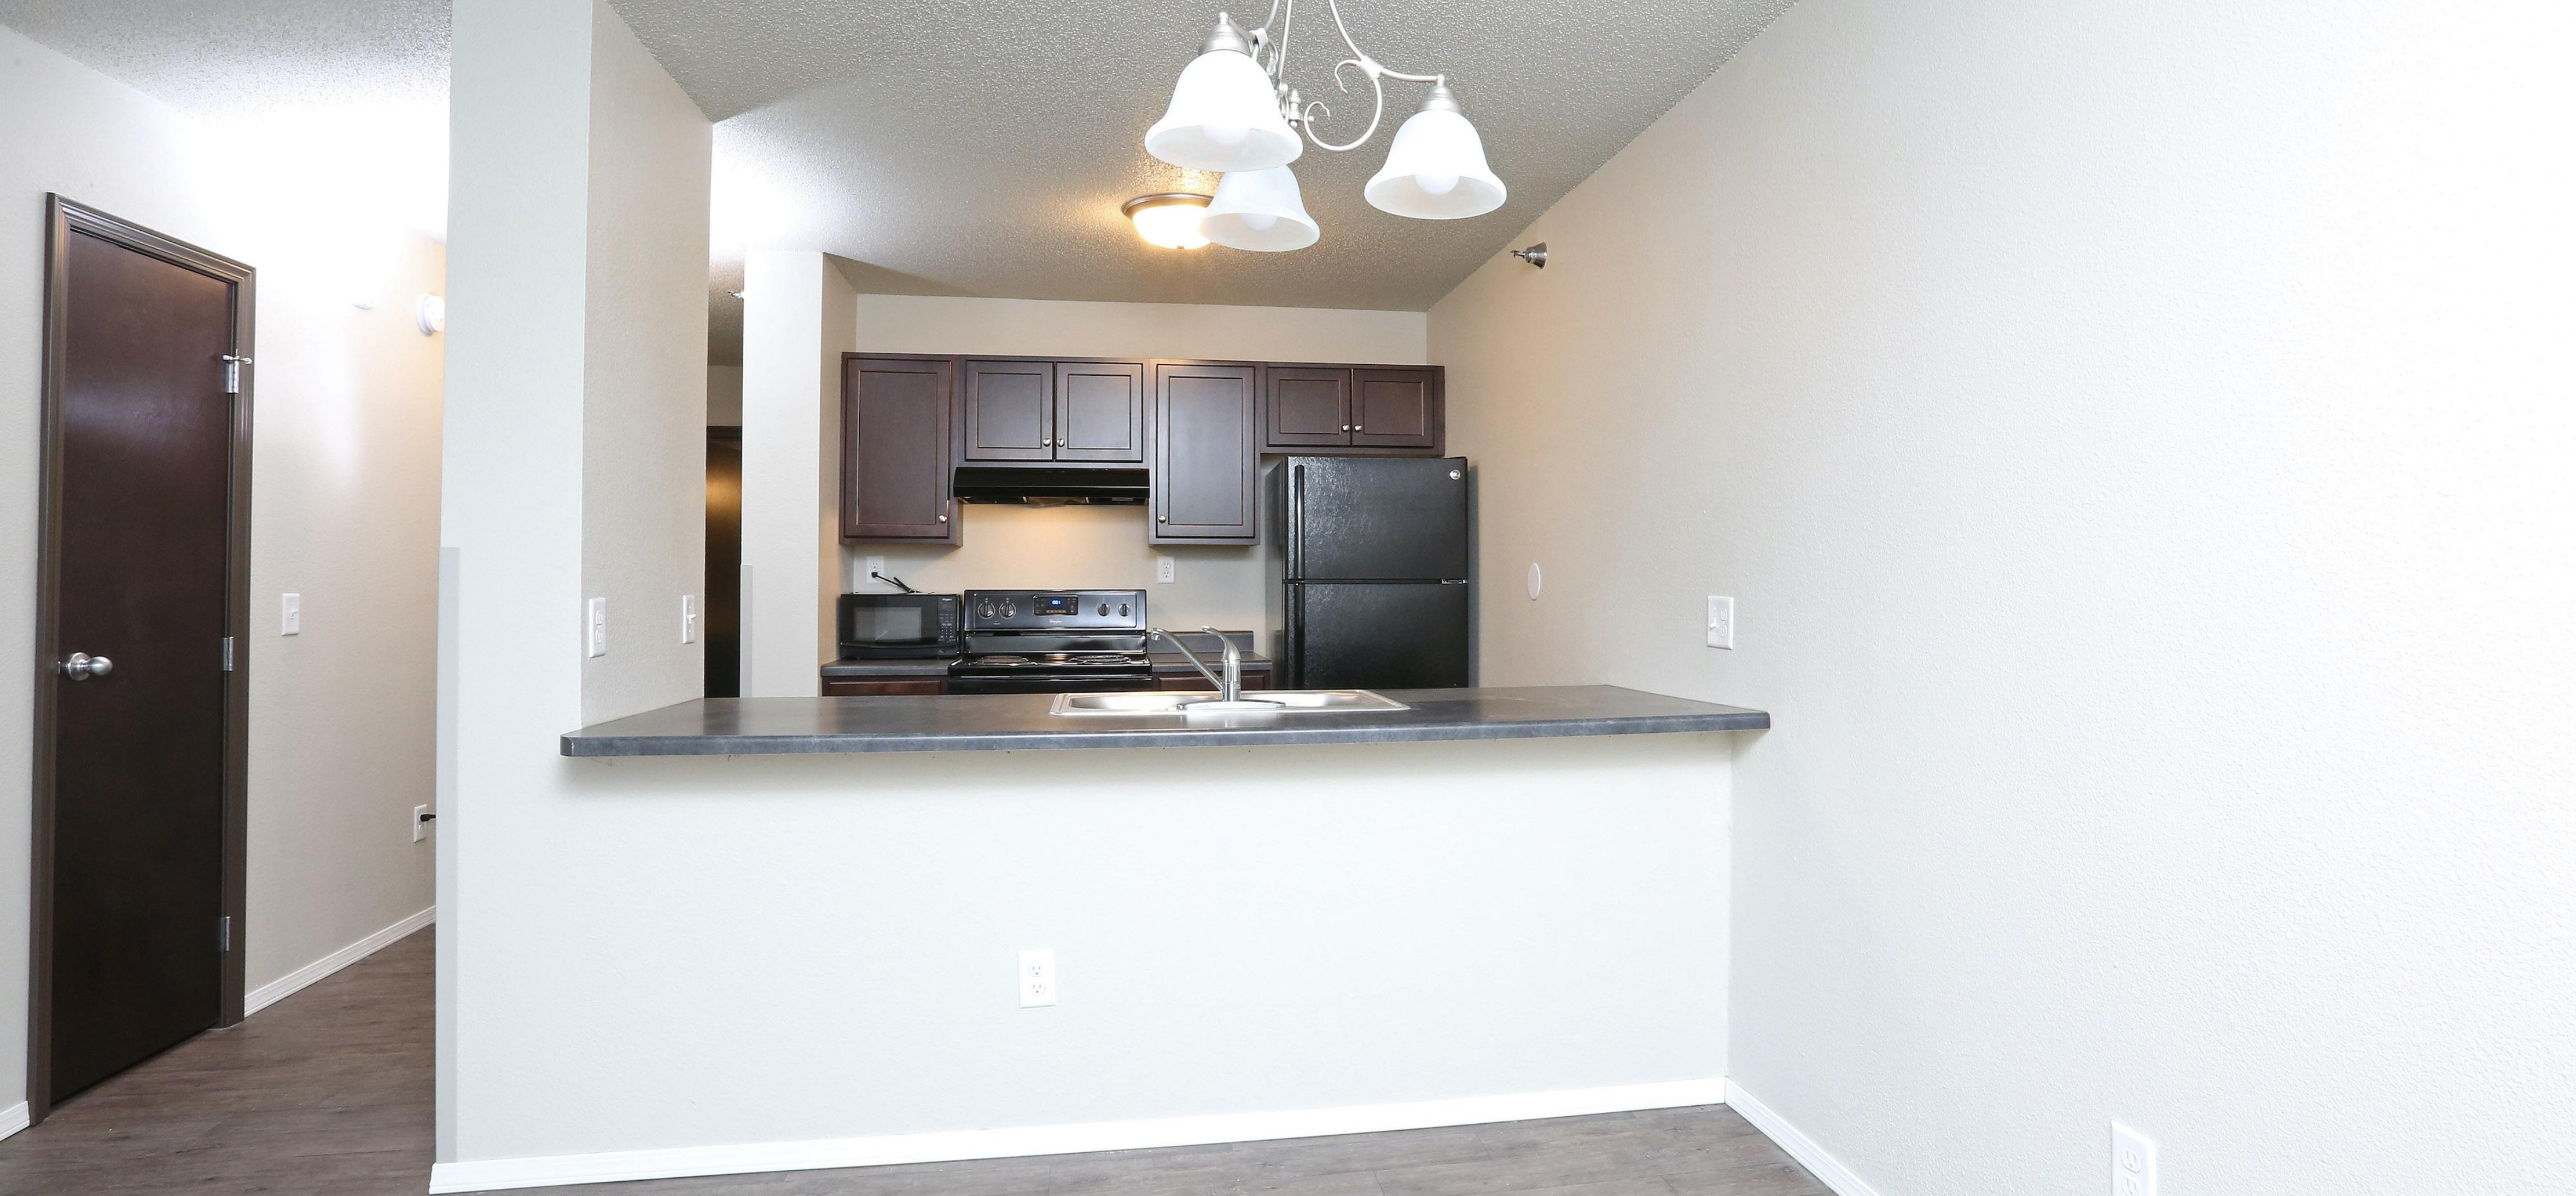 Horizon Apartments Kitchen and Dining room